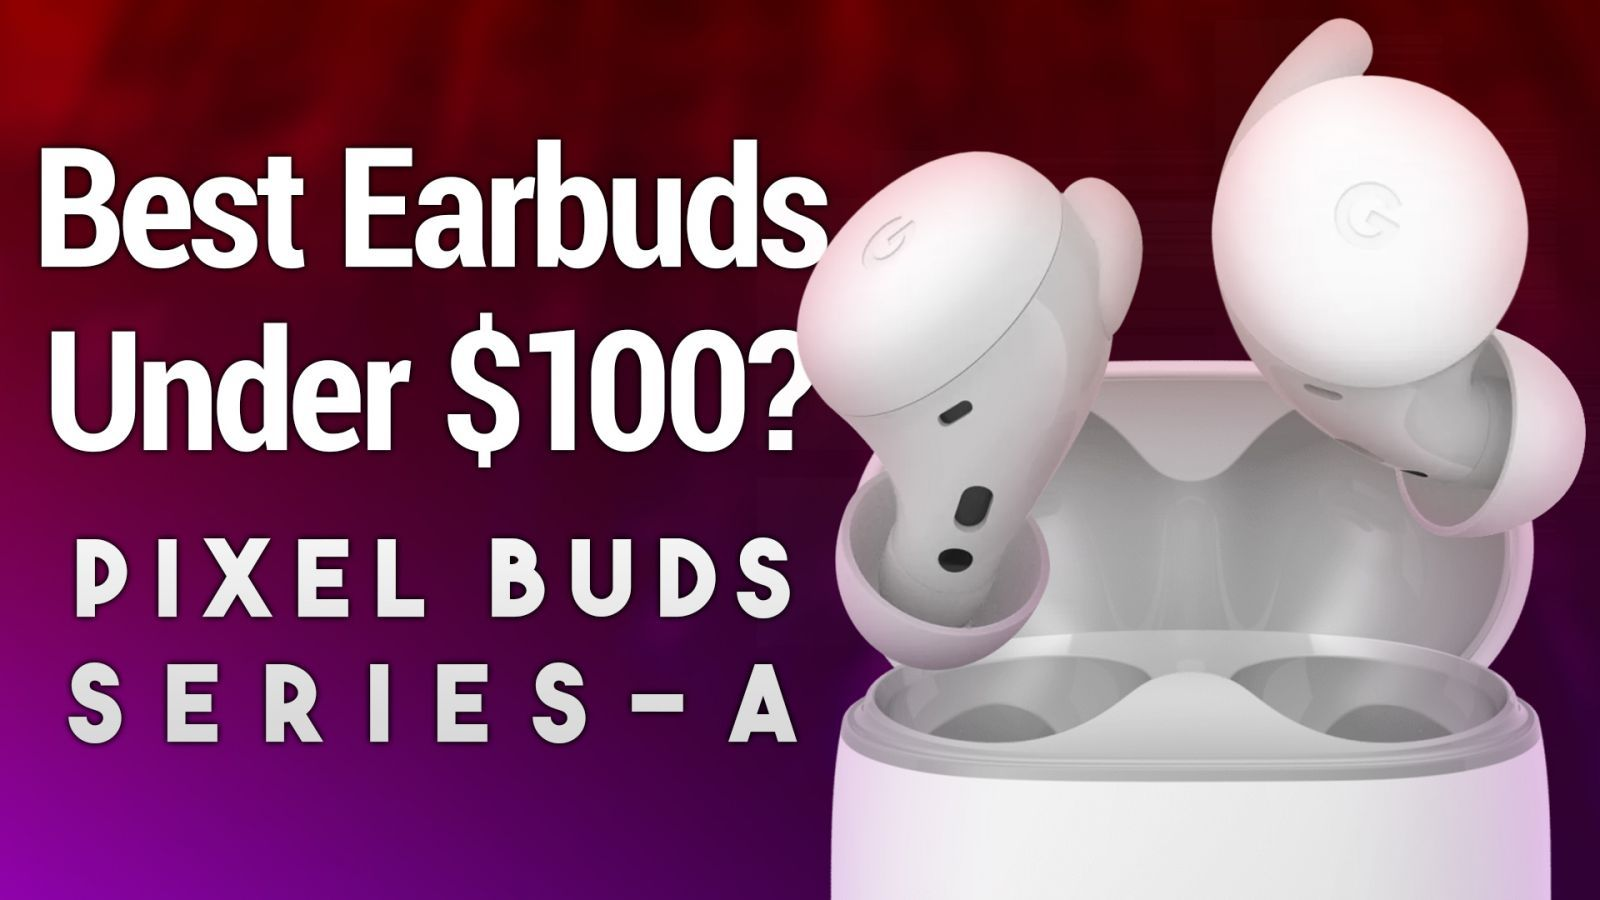 Google Pixel Buds A-Series Review - Best Earbuds for Under $100?